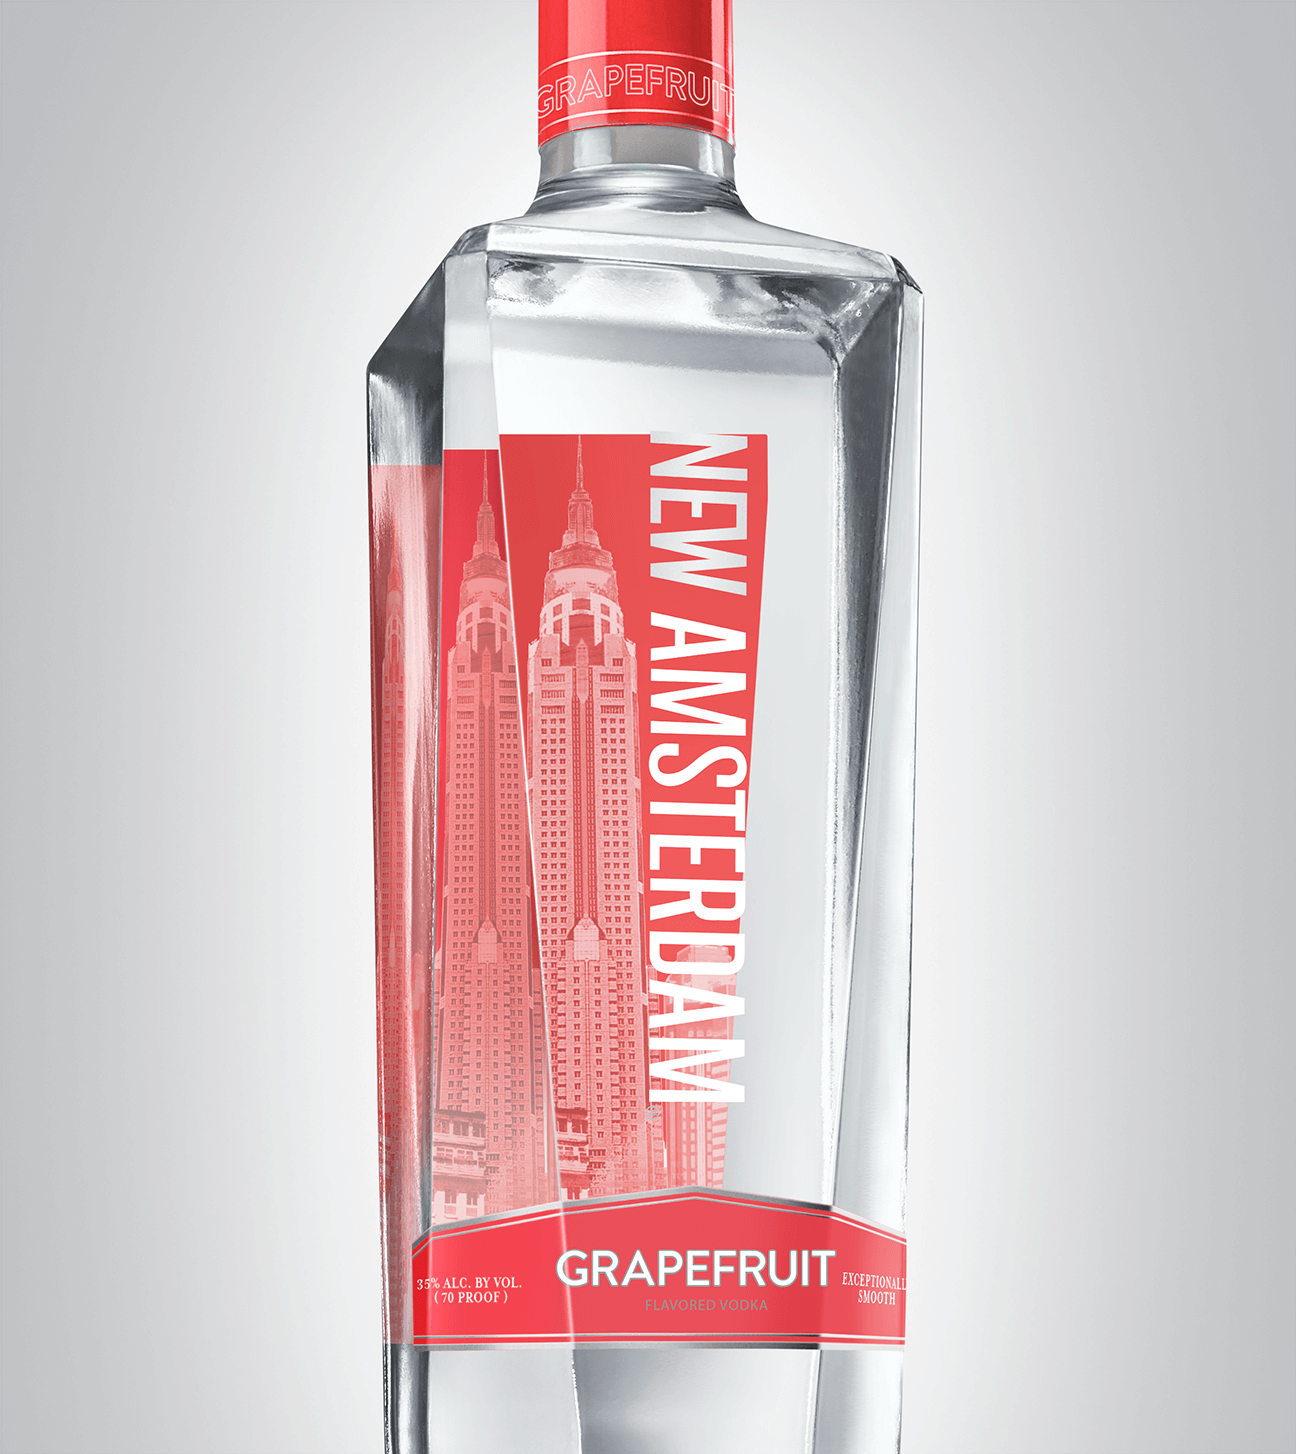 Bottle of New Amsterdam Grapefruit